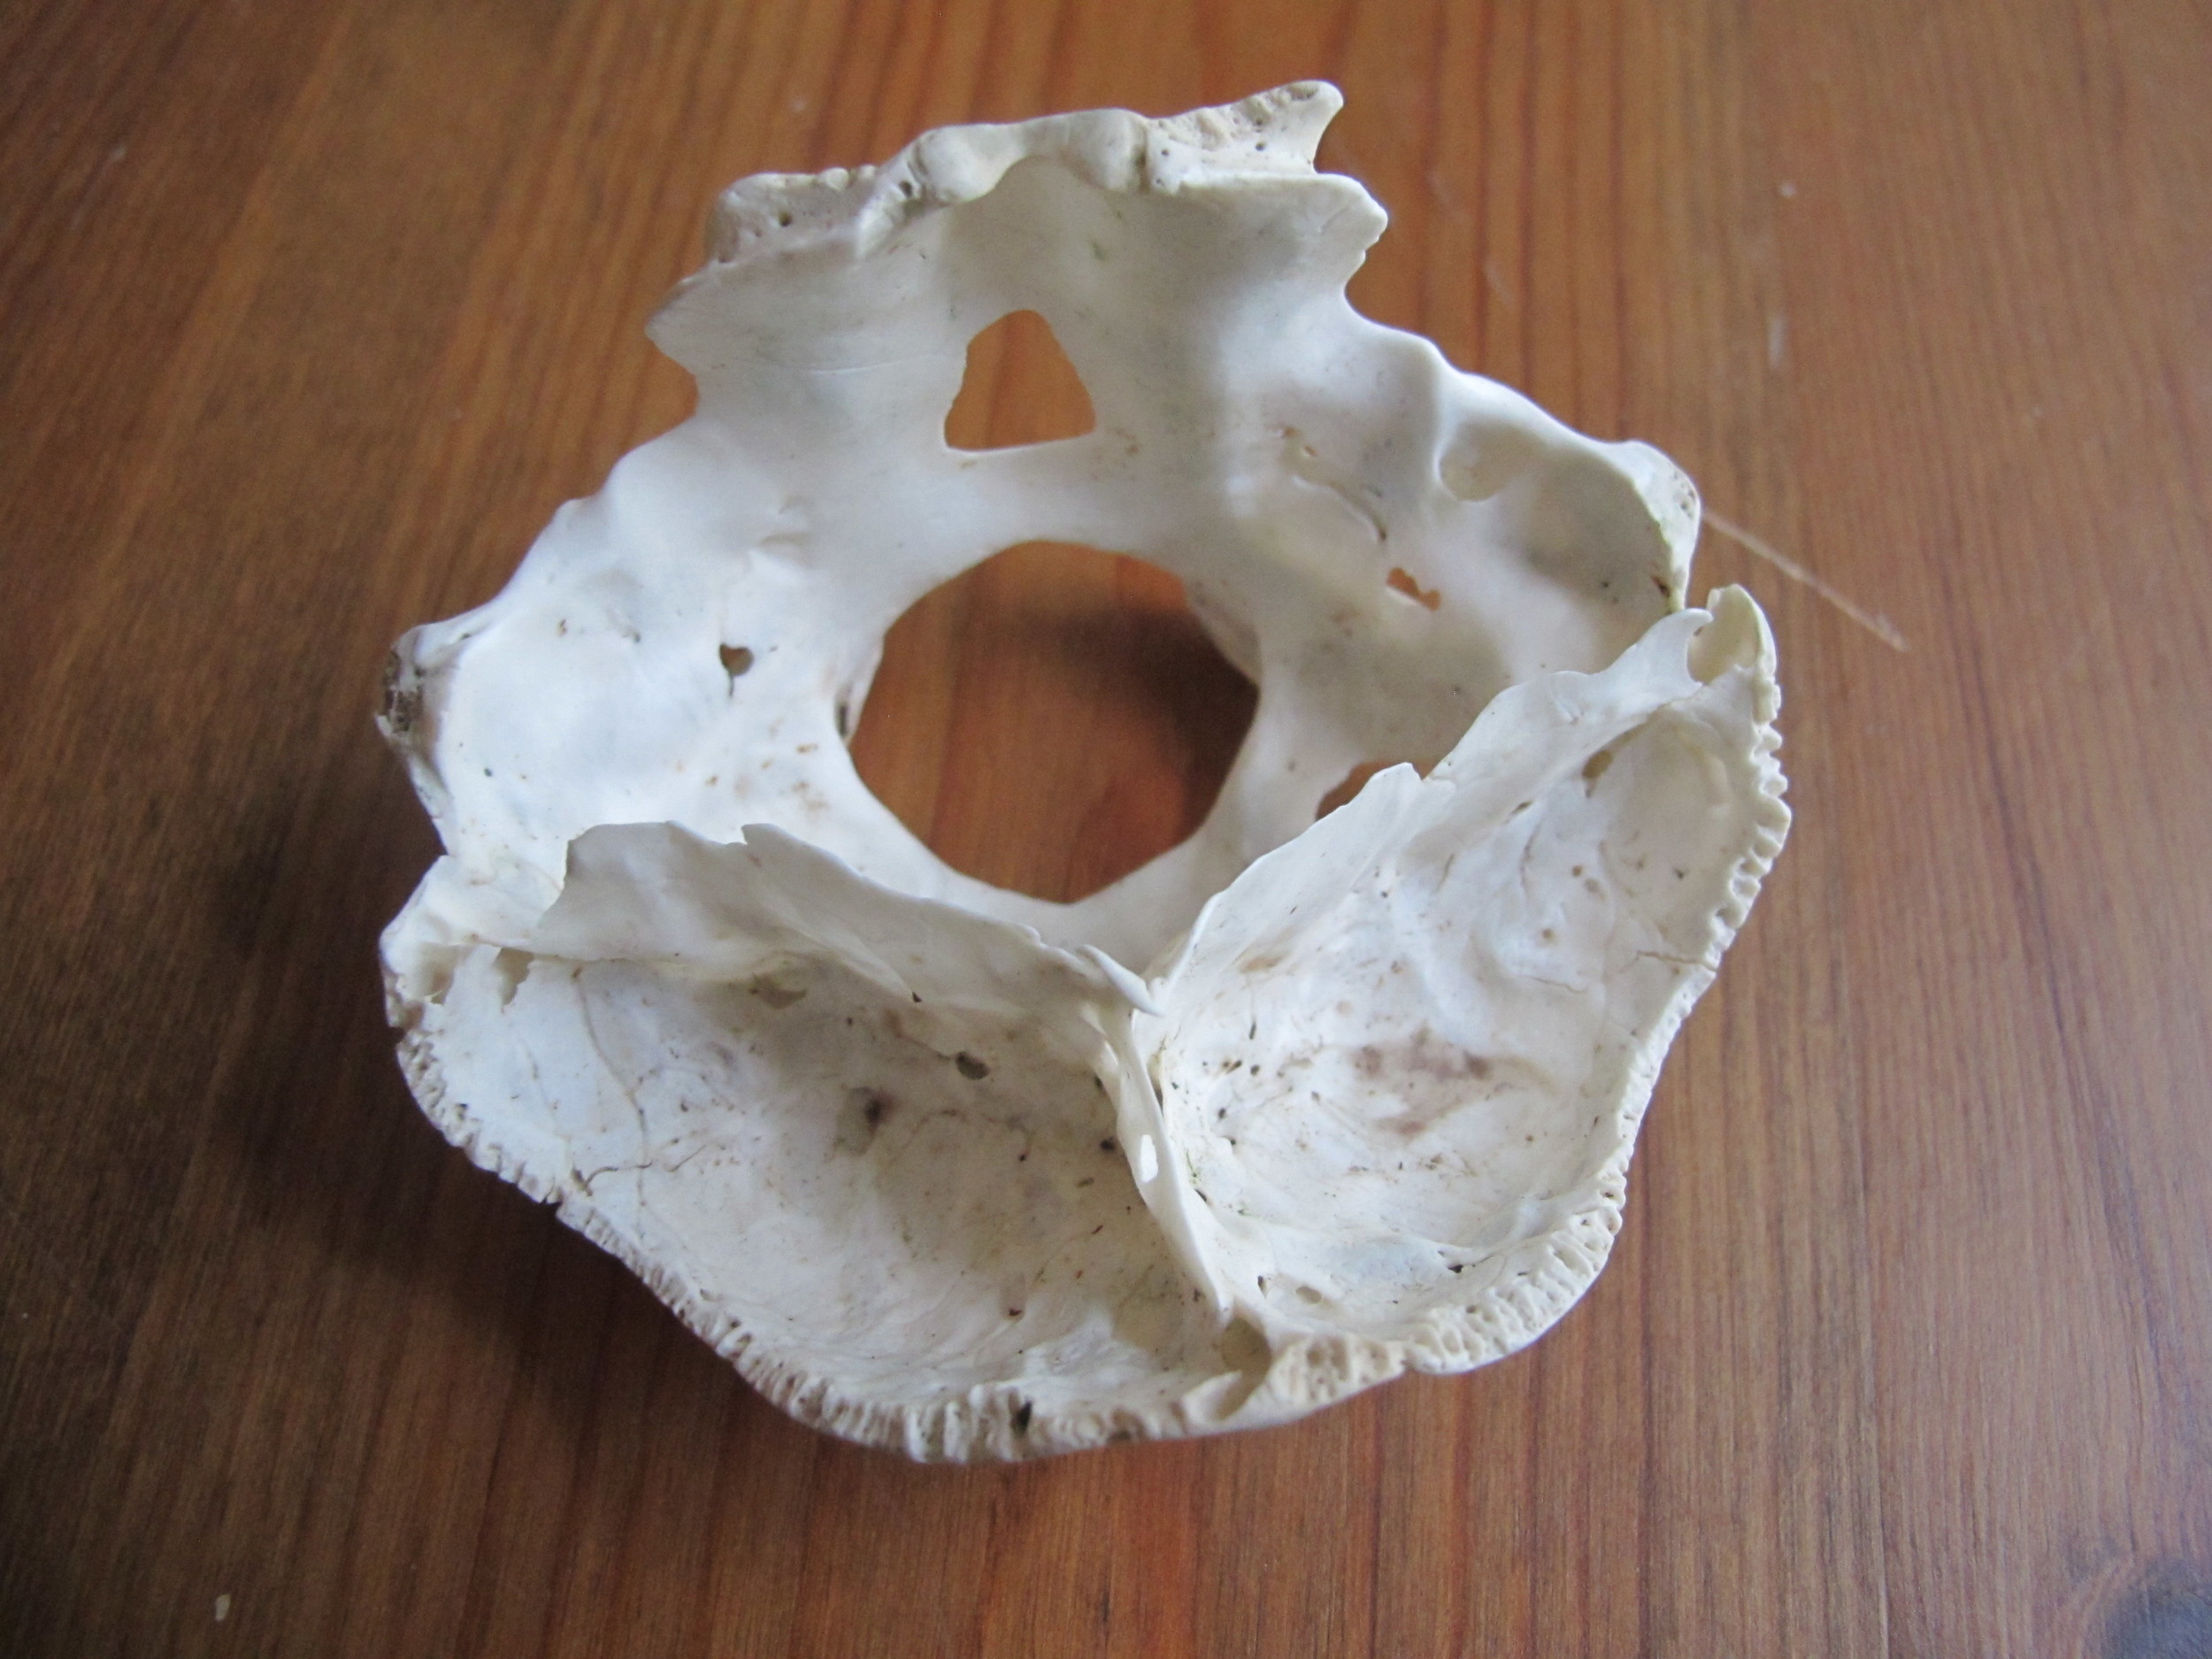 Here's a bottom view of the same bone. Or maybe this is the top view.